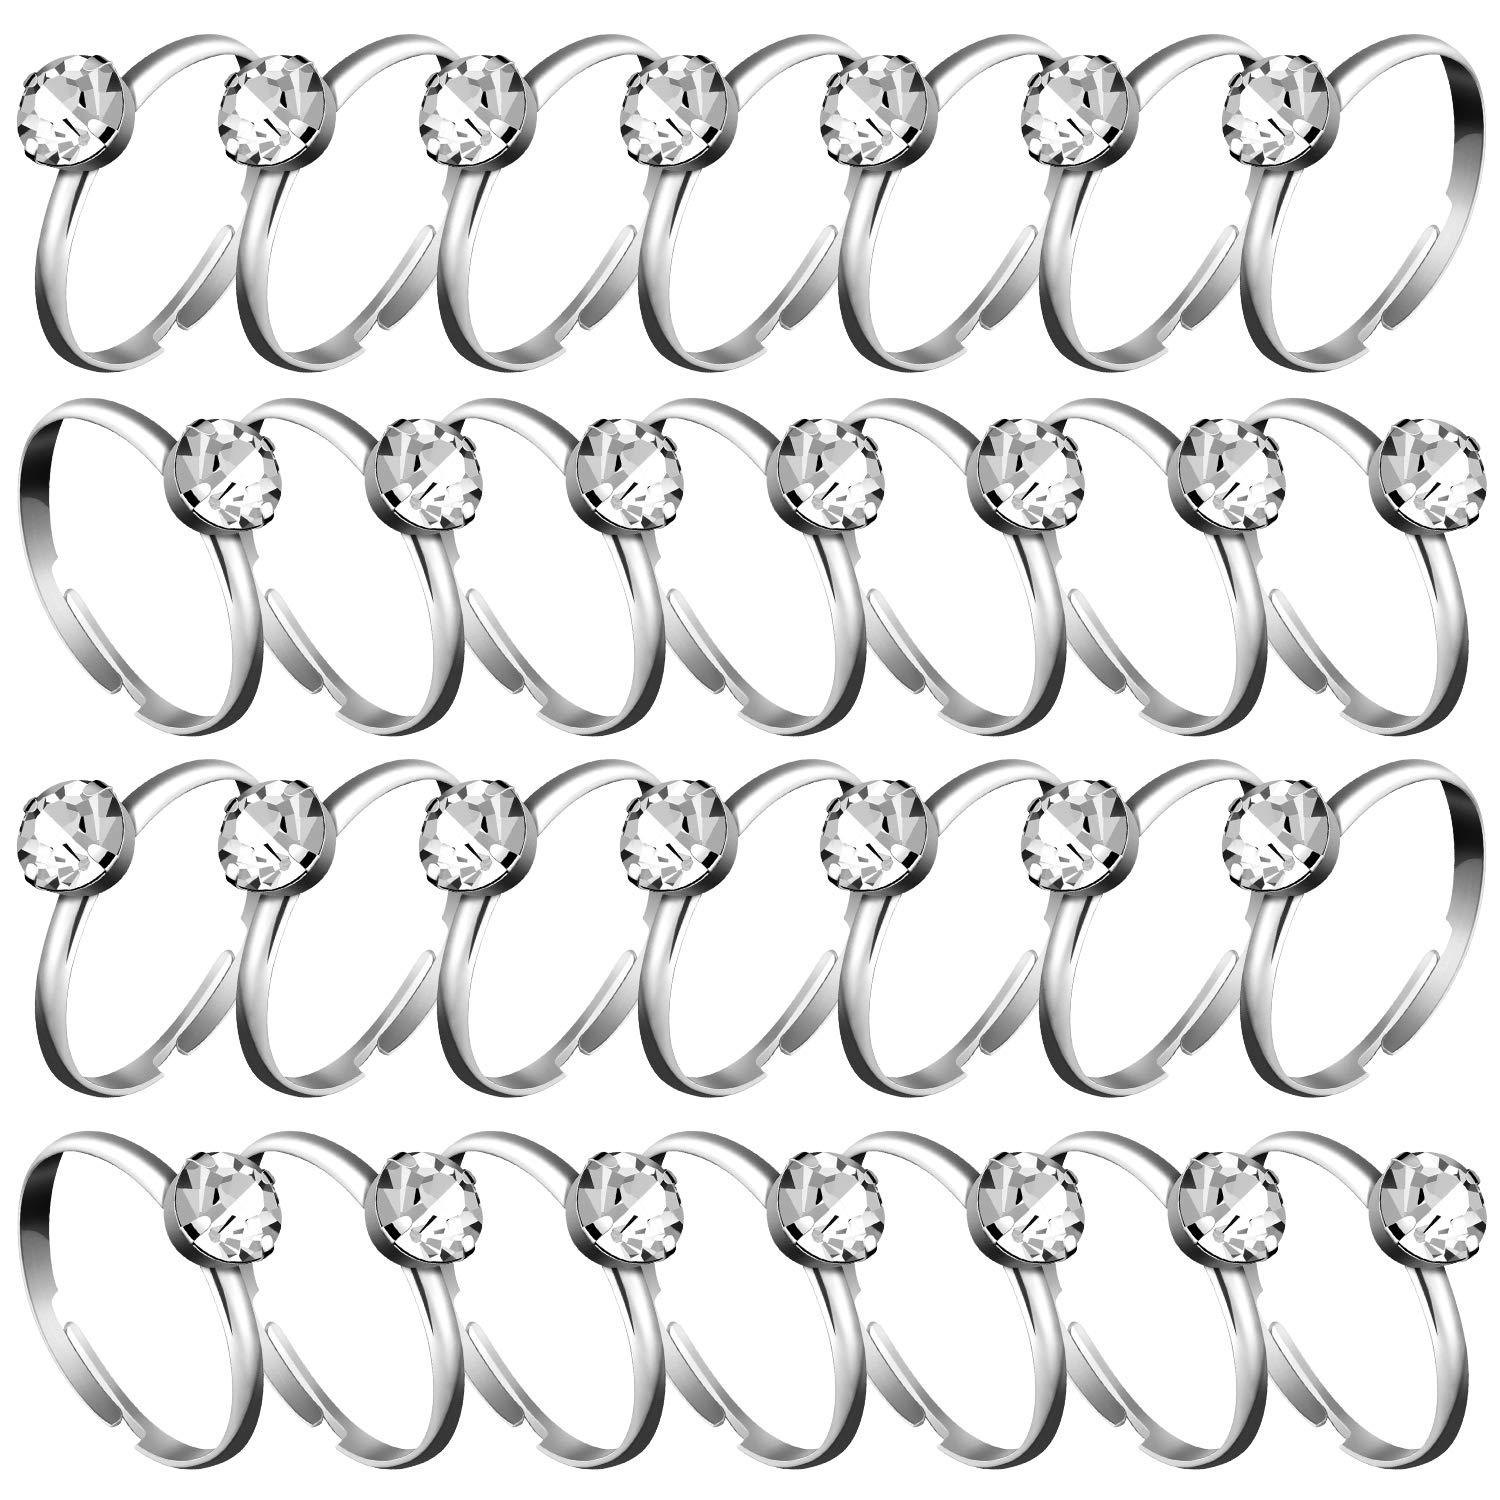 Whaline 72 Pcs Silver Diamond Engagement Rings for Wedding Table Decorations, Party Supply, Favor Accents, Cupcake Toppers